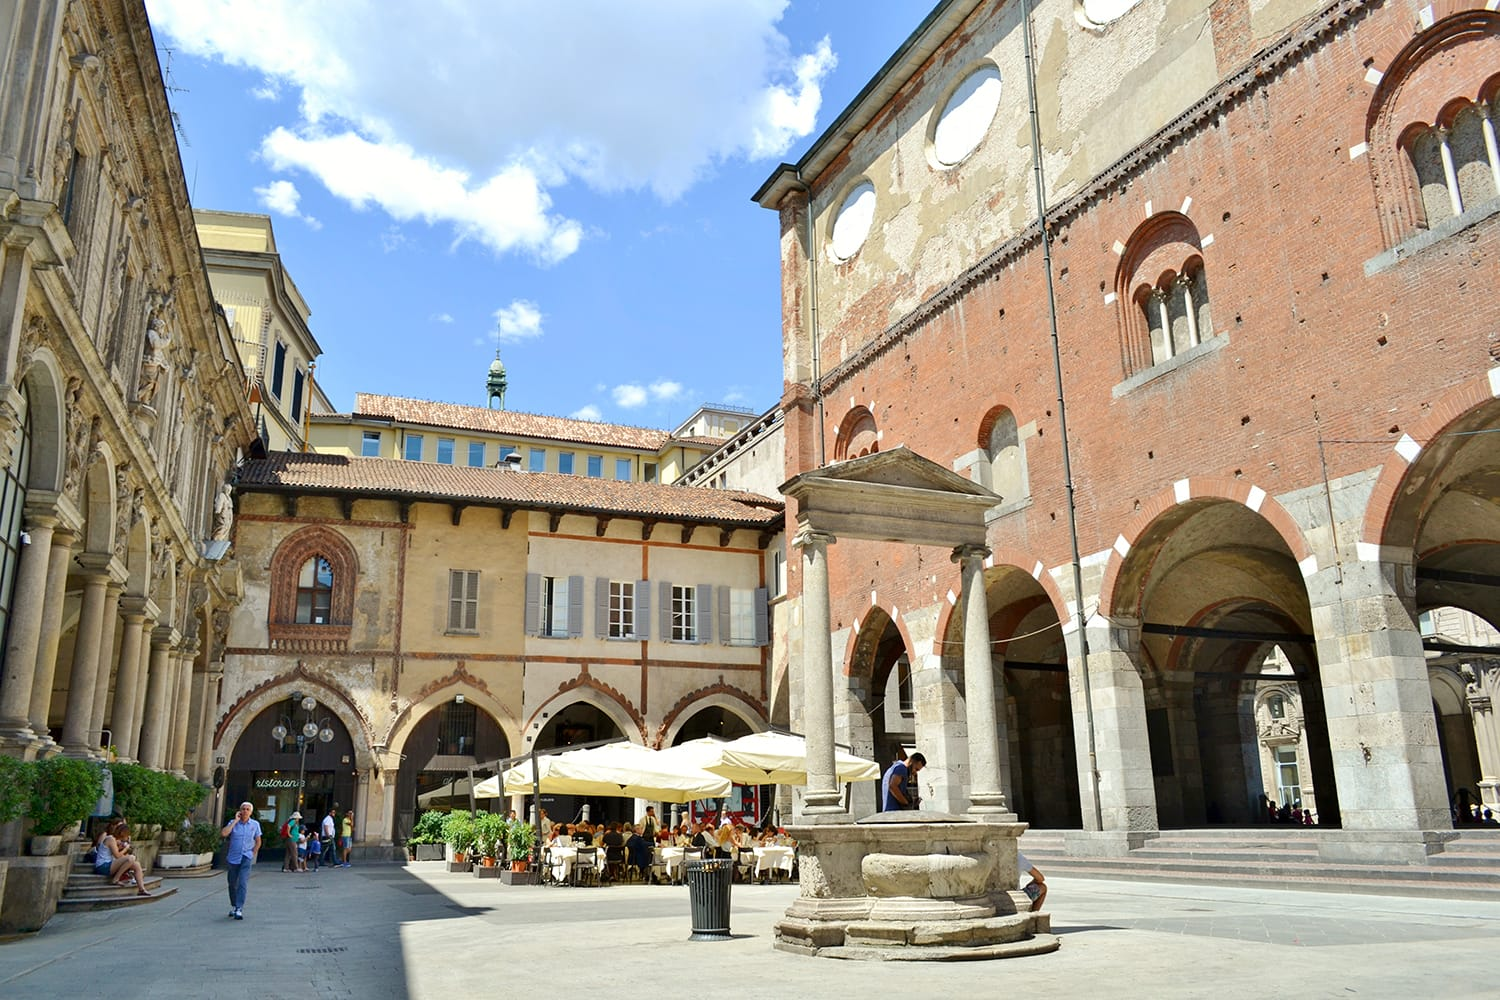 Medieval stunning outlook to an ancient architecture of the Mercanti square in Milan, Italy